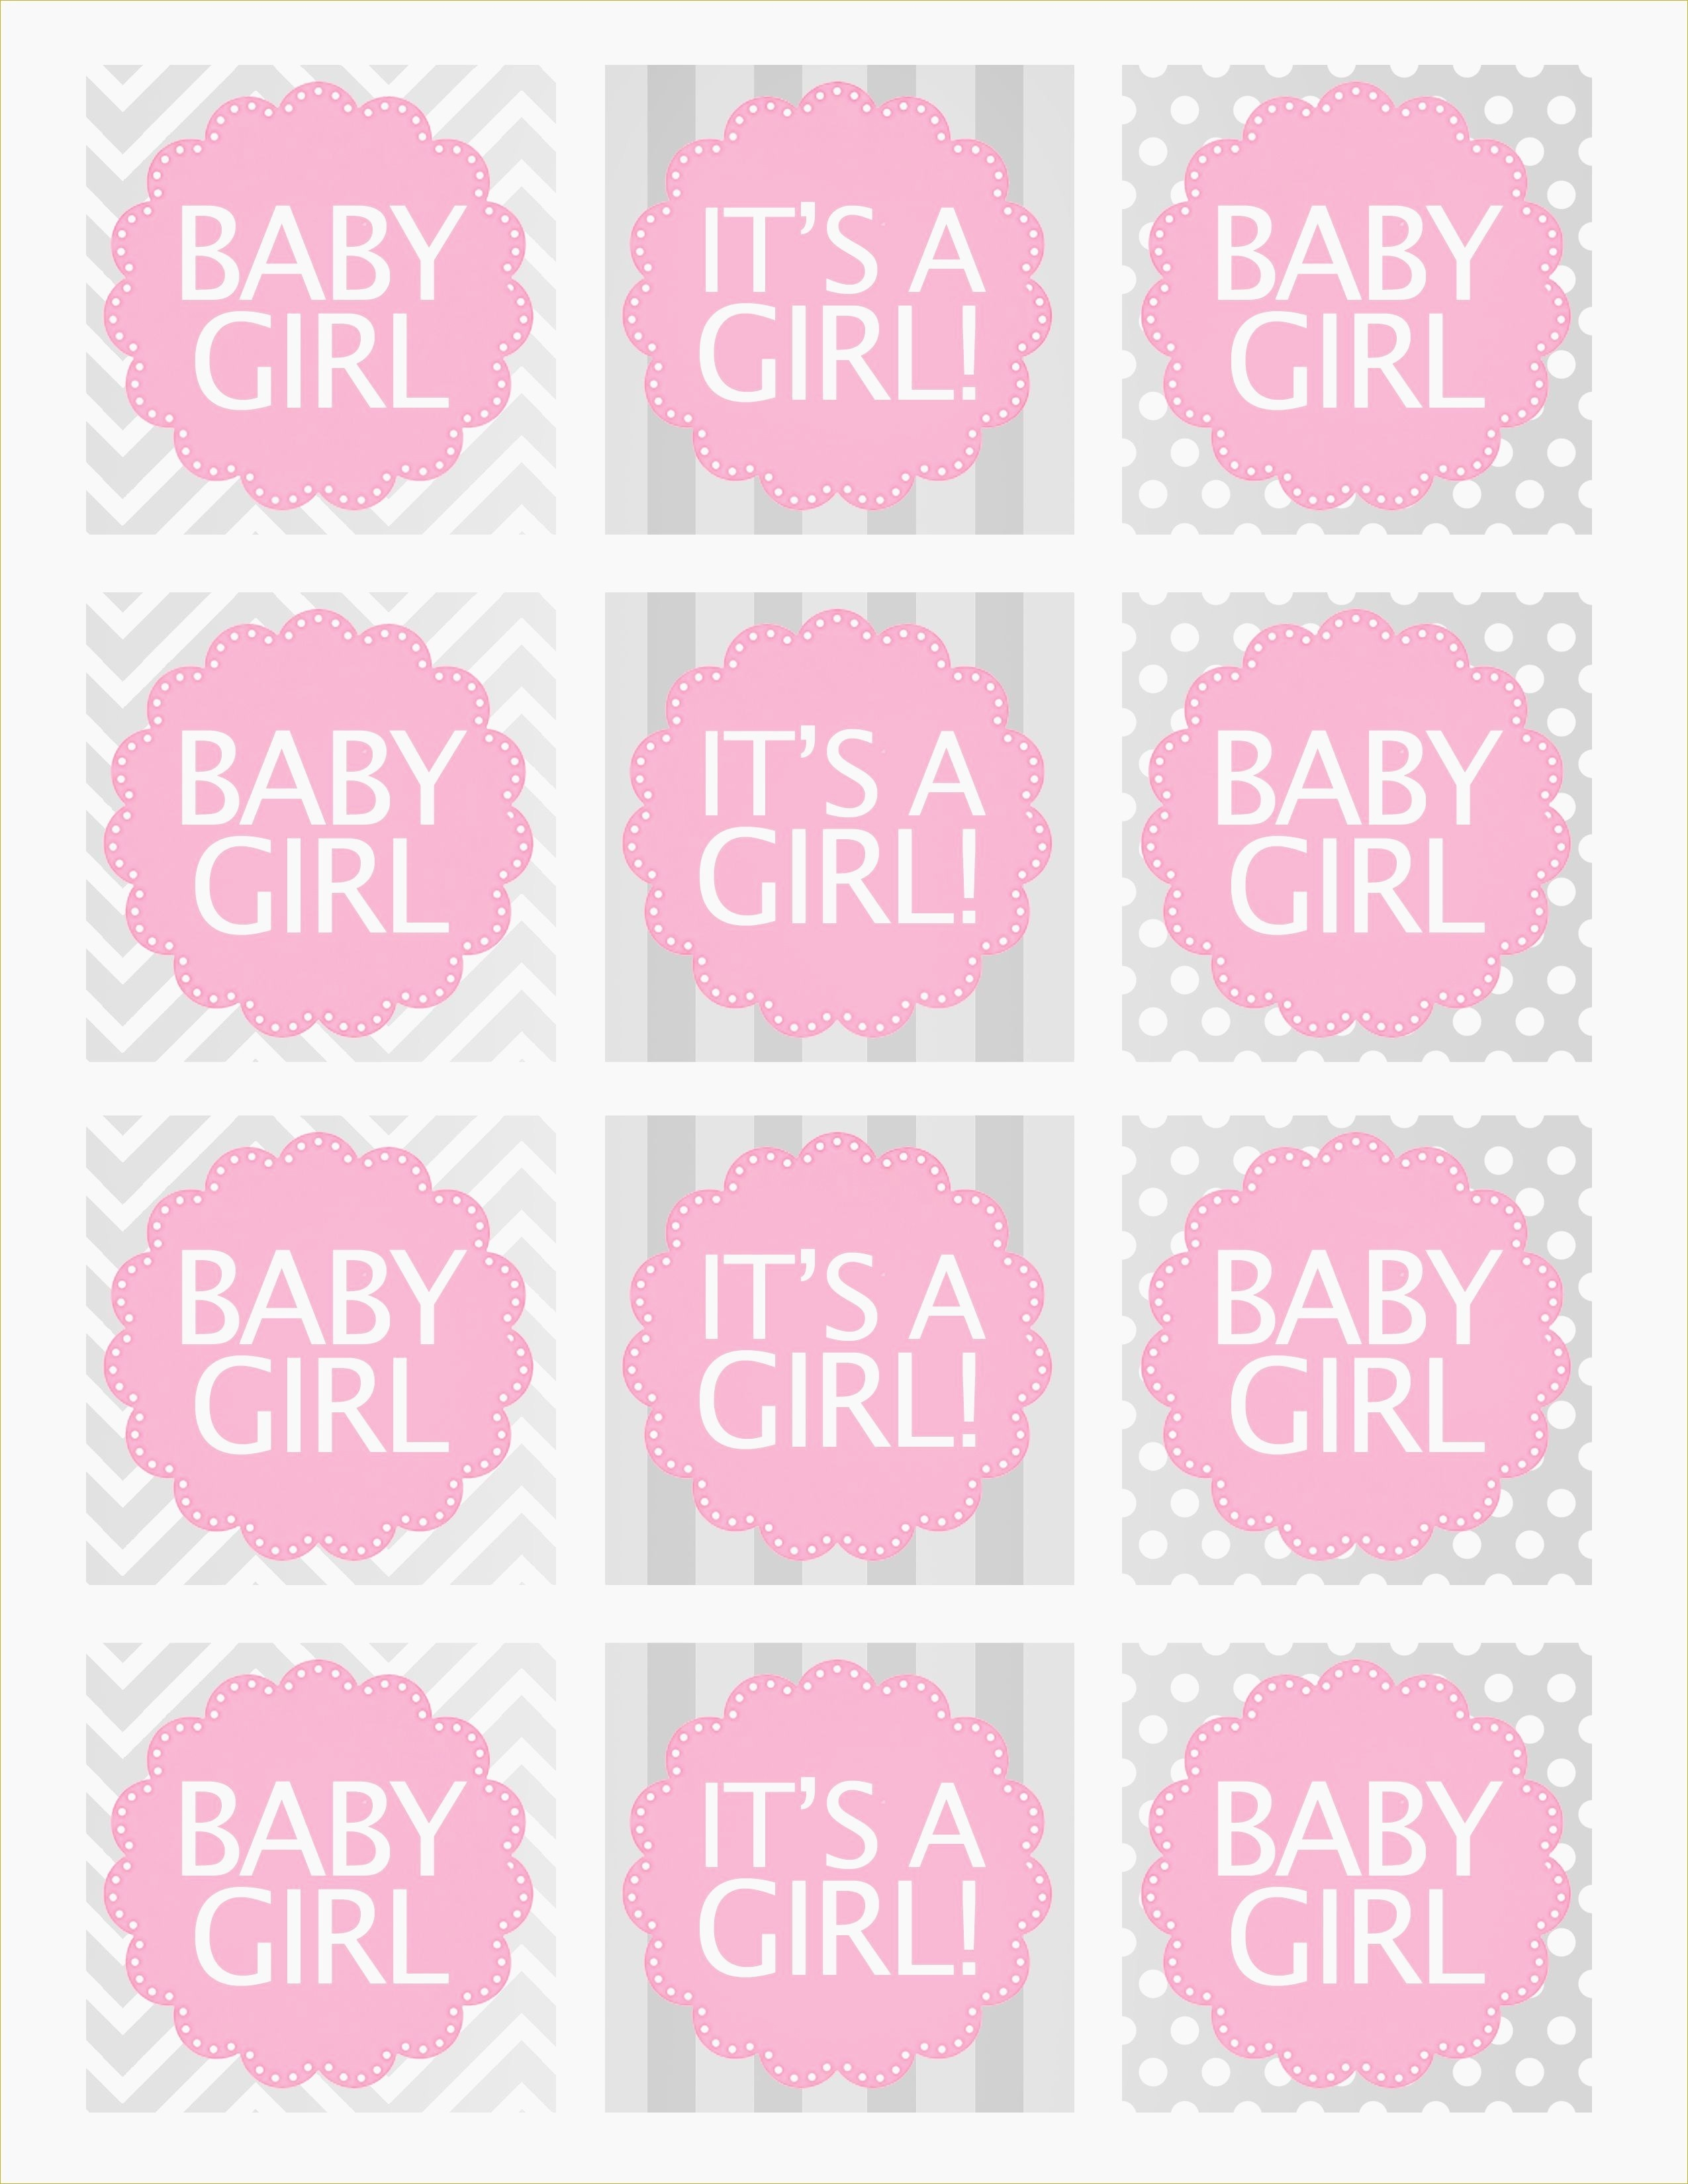 Inspirational Elephant Baby Shower Templates   Www.pantry-Magic - Free Printable Baby Shower Favor Tags